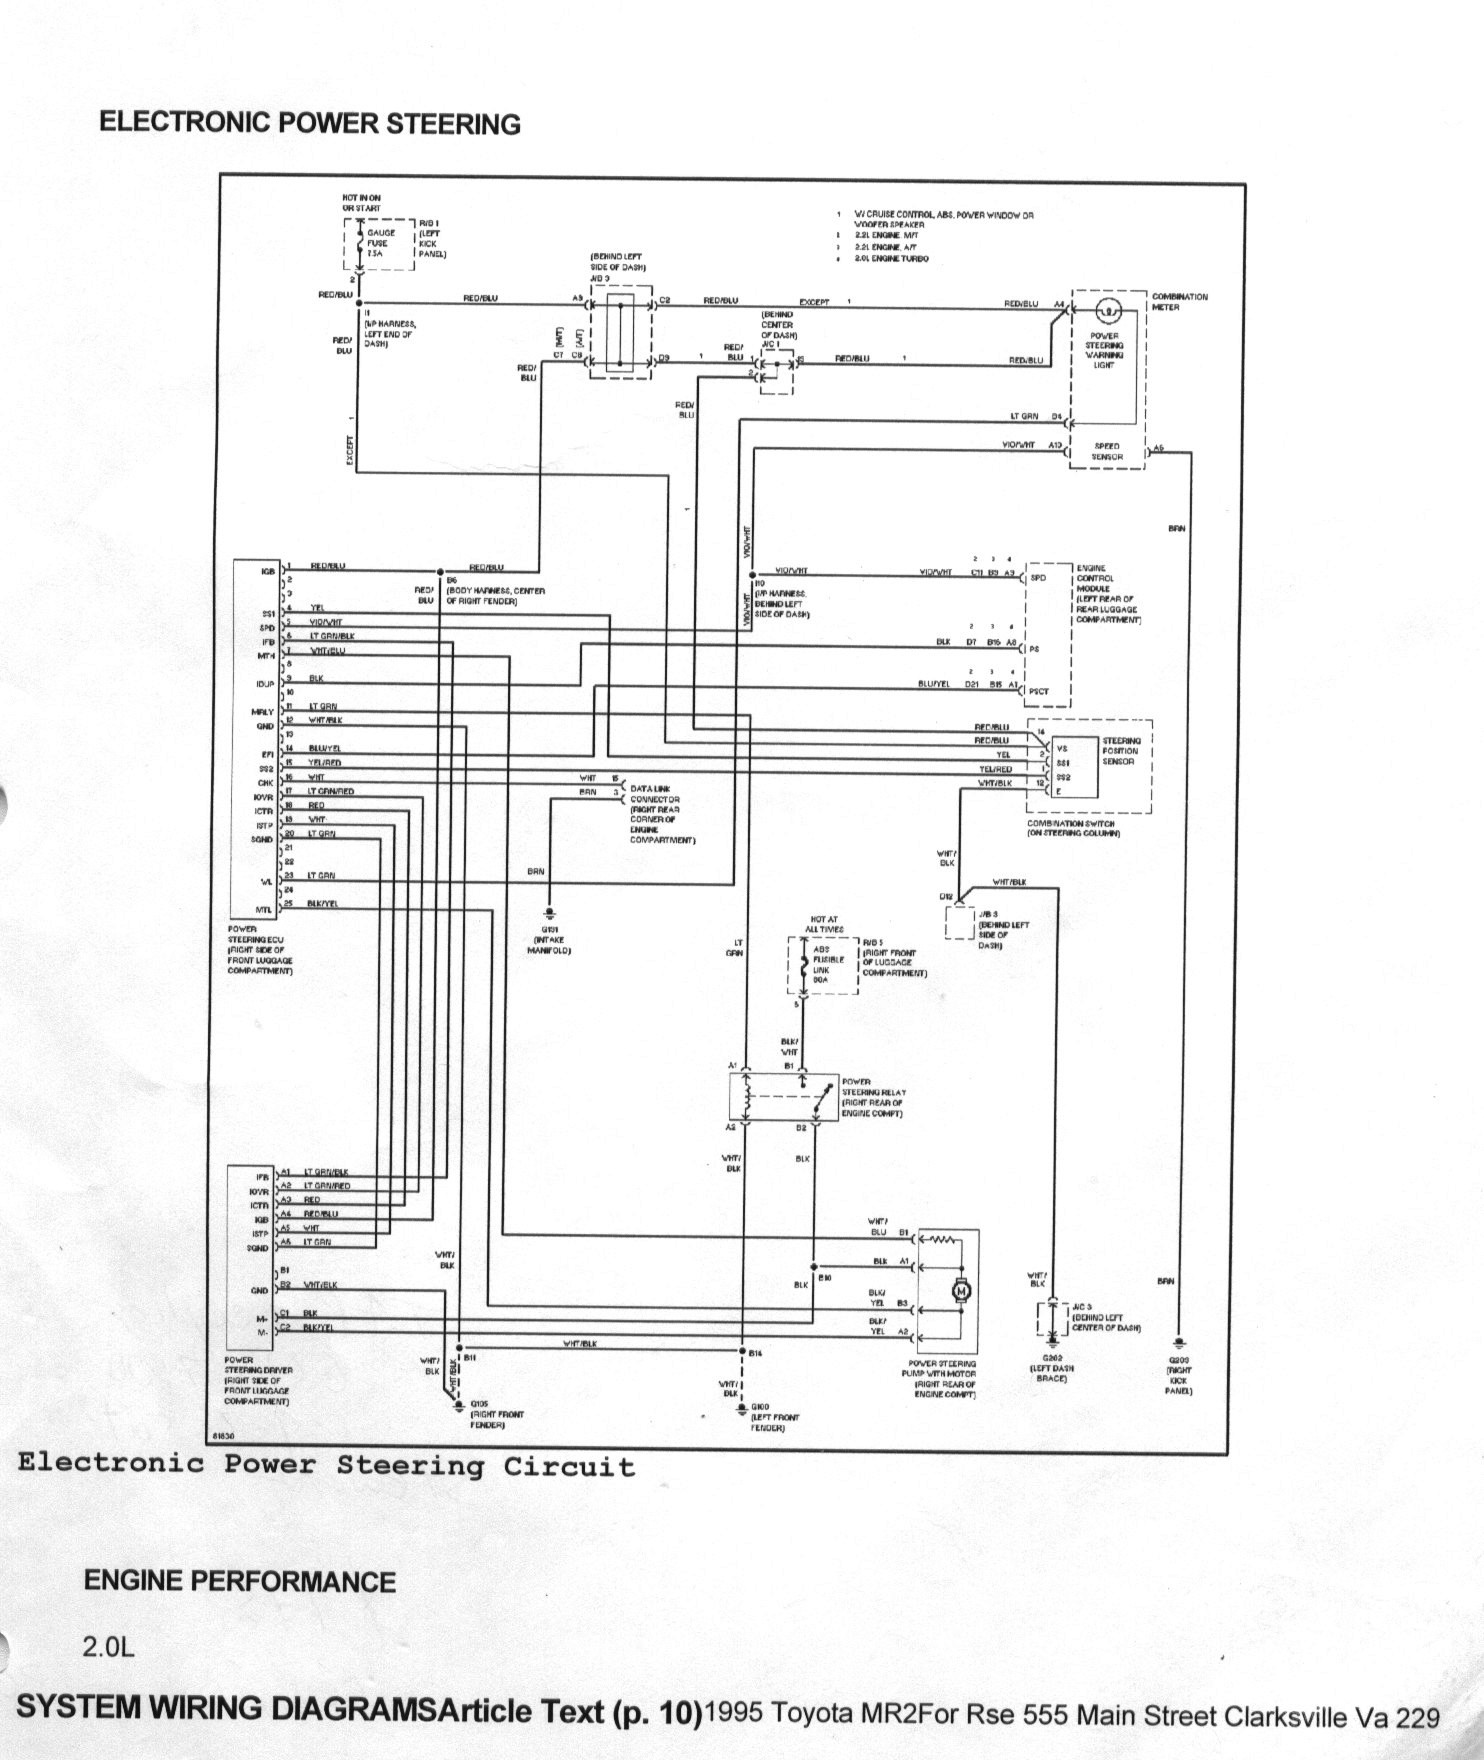 Diagram view in addition Used Official 1985 1986 Honda Vt1100c Shadow Factory Service Manual U61mg801 additionally Listings additionally 2008 Ford Escape Wiring Diagram additionally Gx160. on honda wiring diagram